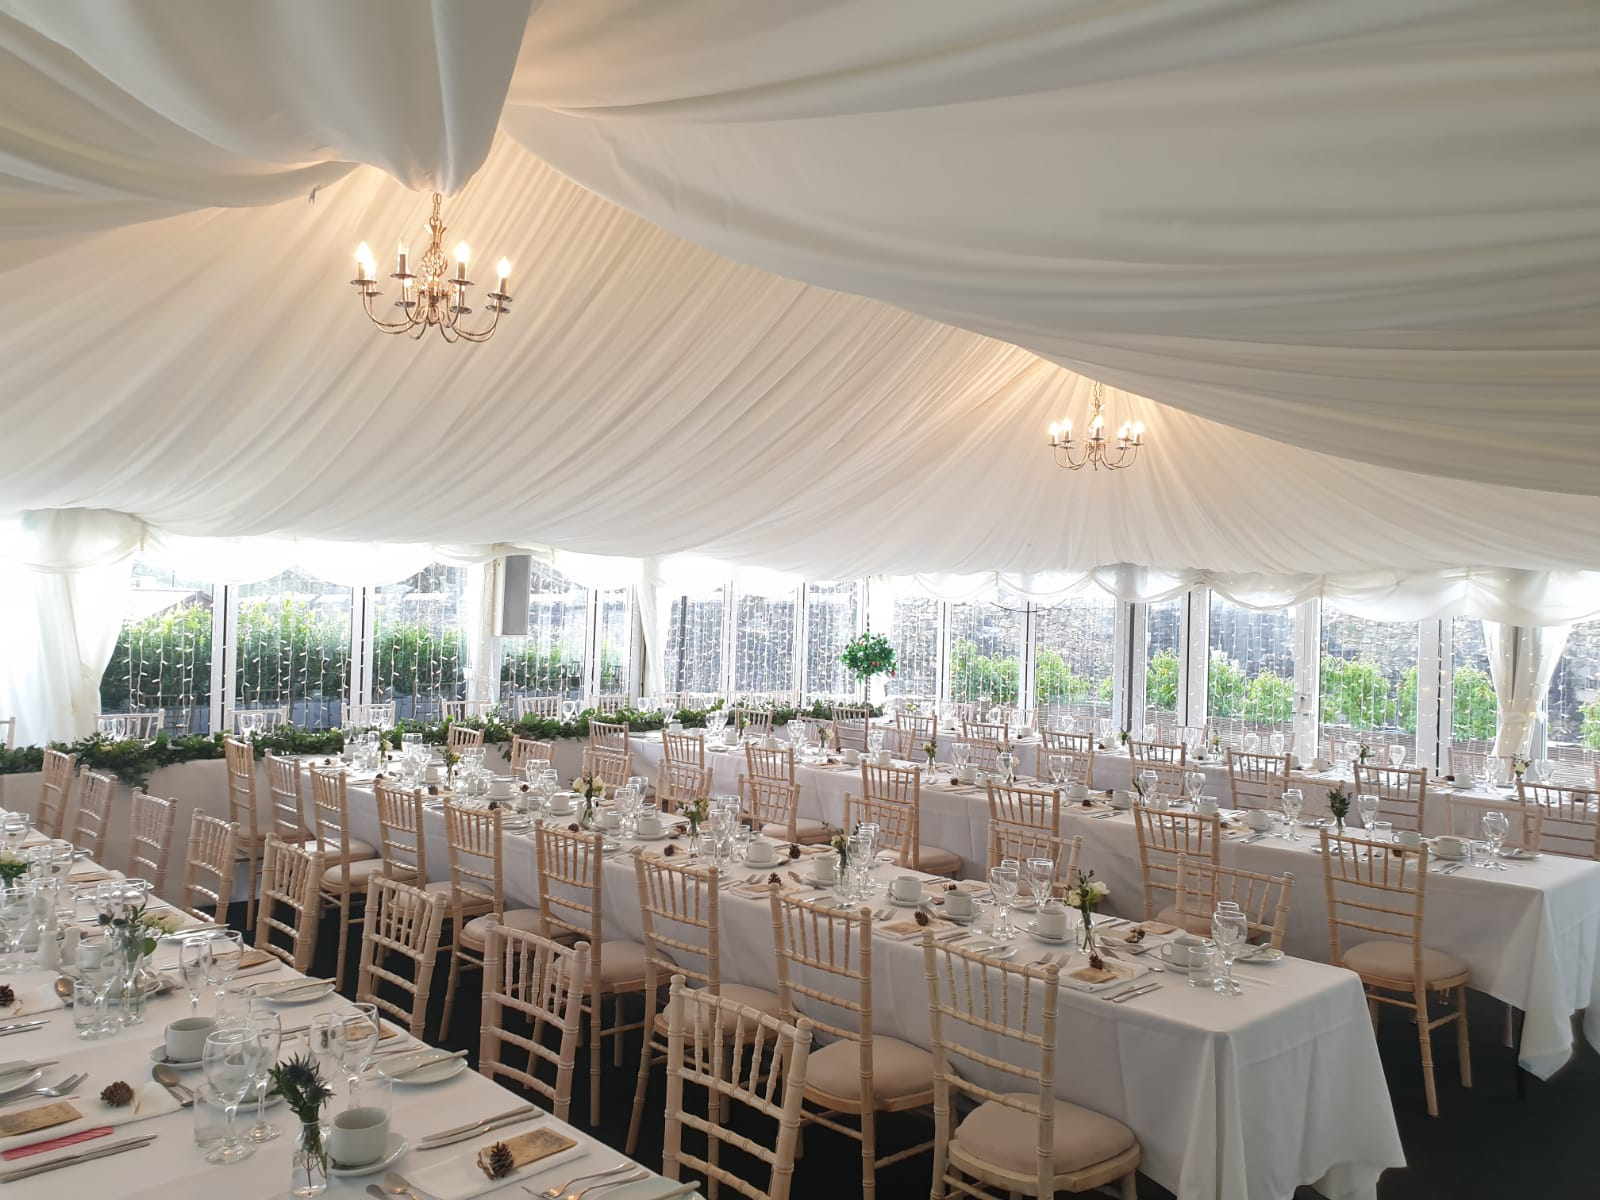 Wedding set up in marquee with long tables